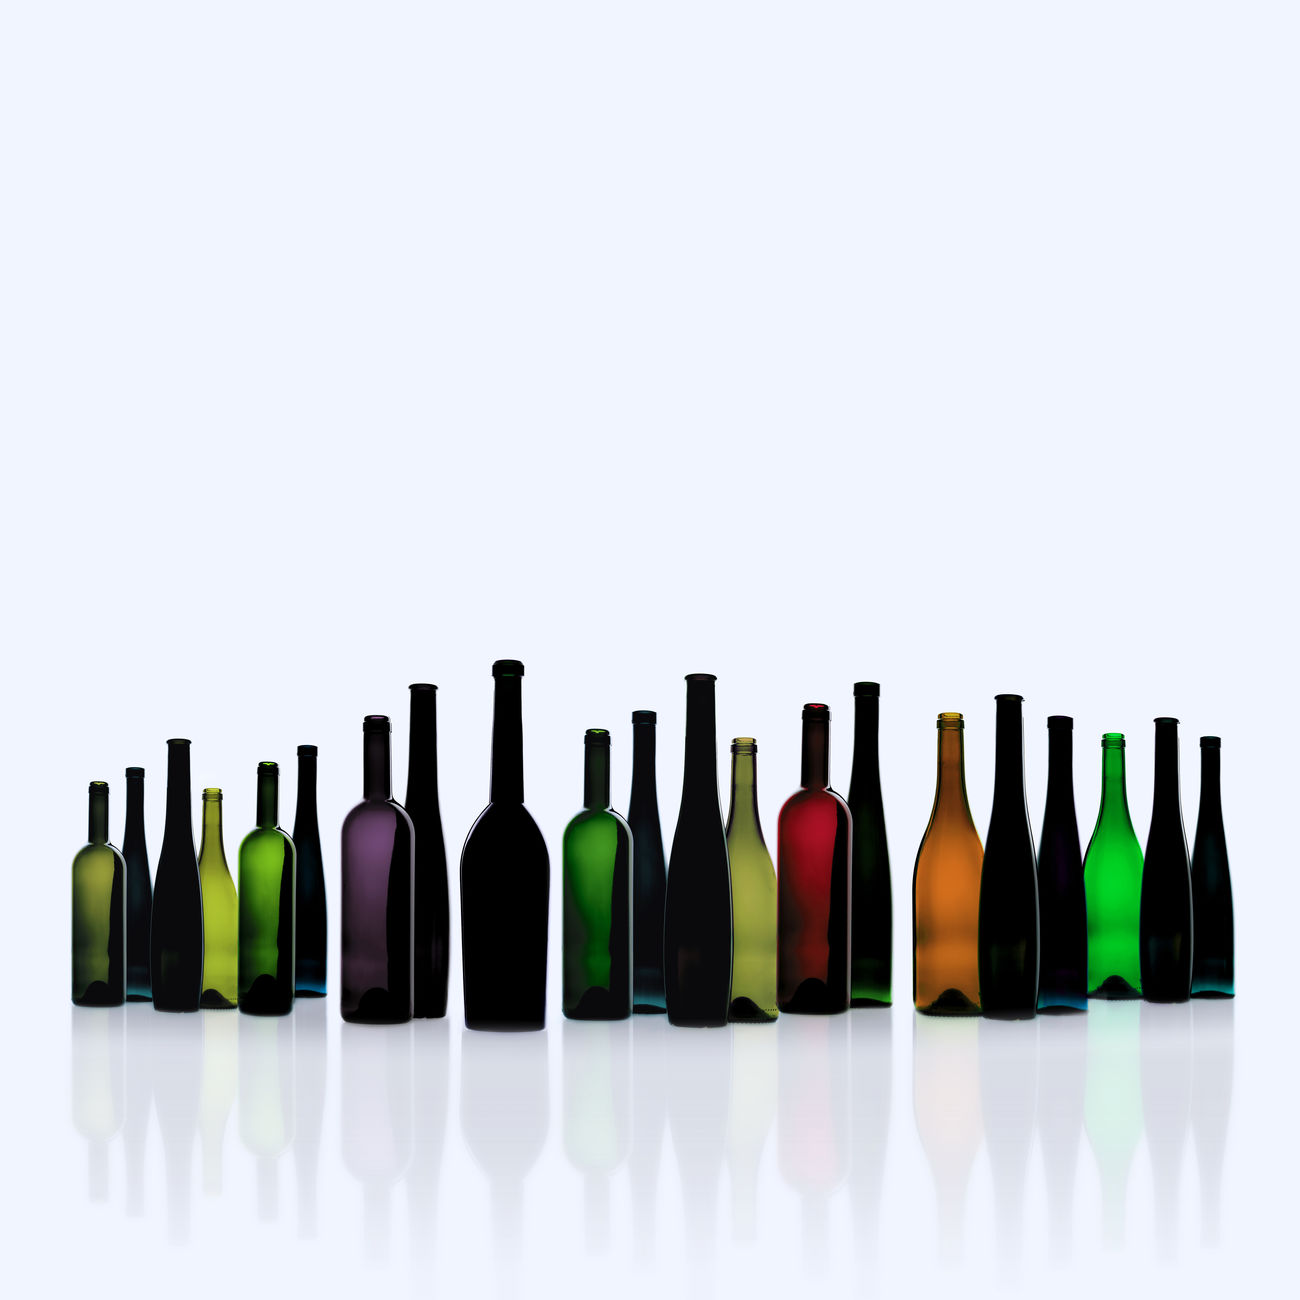 Alcohol Arrangement Choice Cut Out In A Row Large Group Of Objects No People Studio Shot Variation White Background Wine Bottles On Table